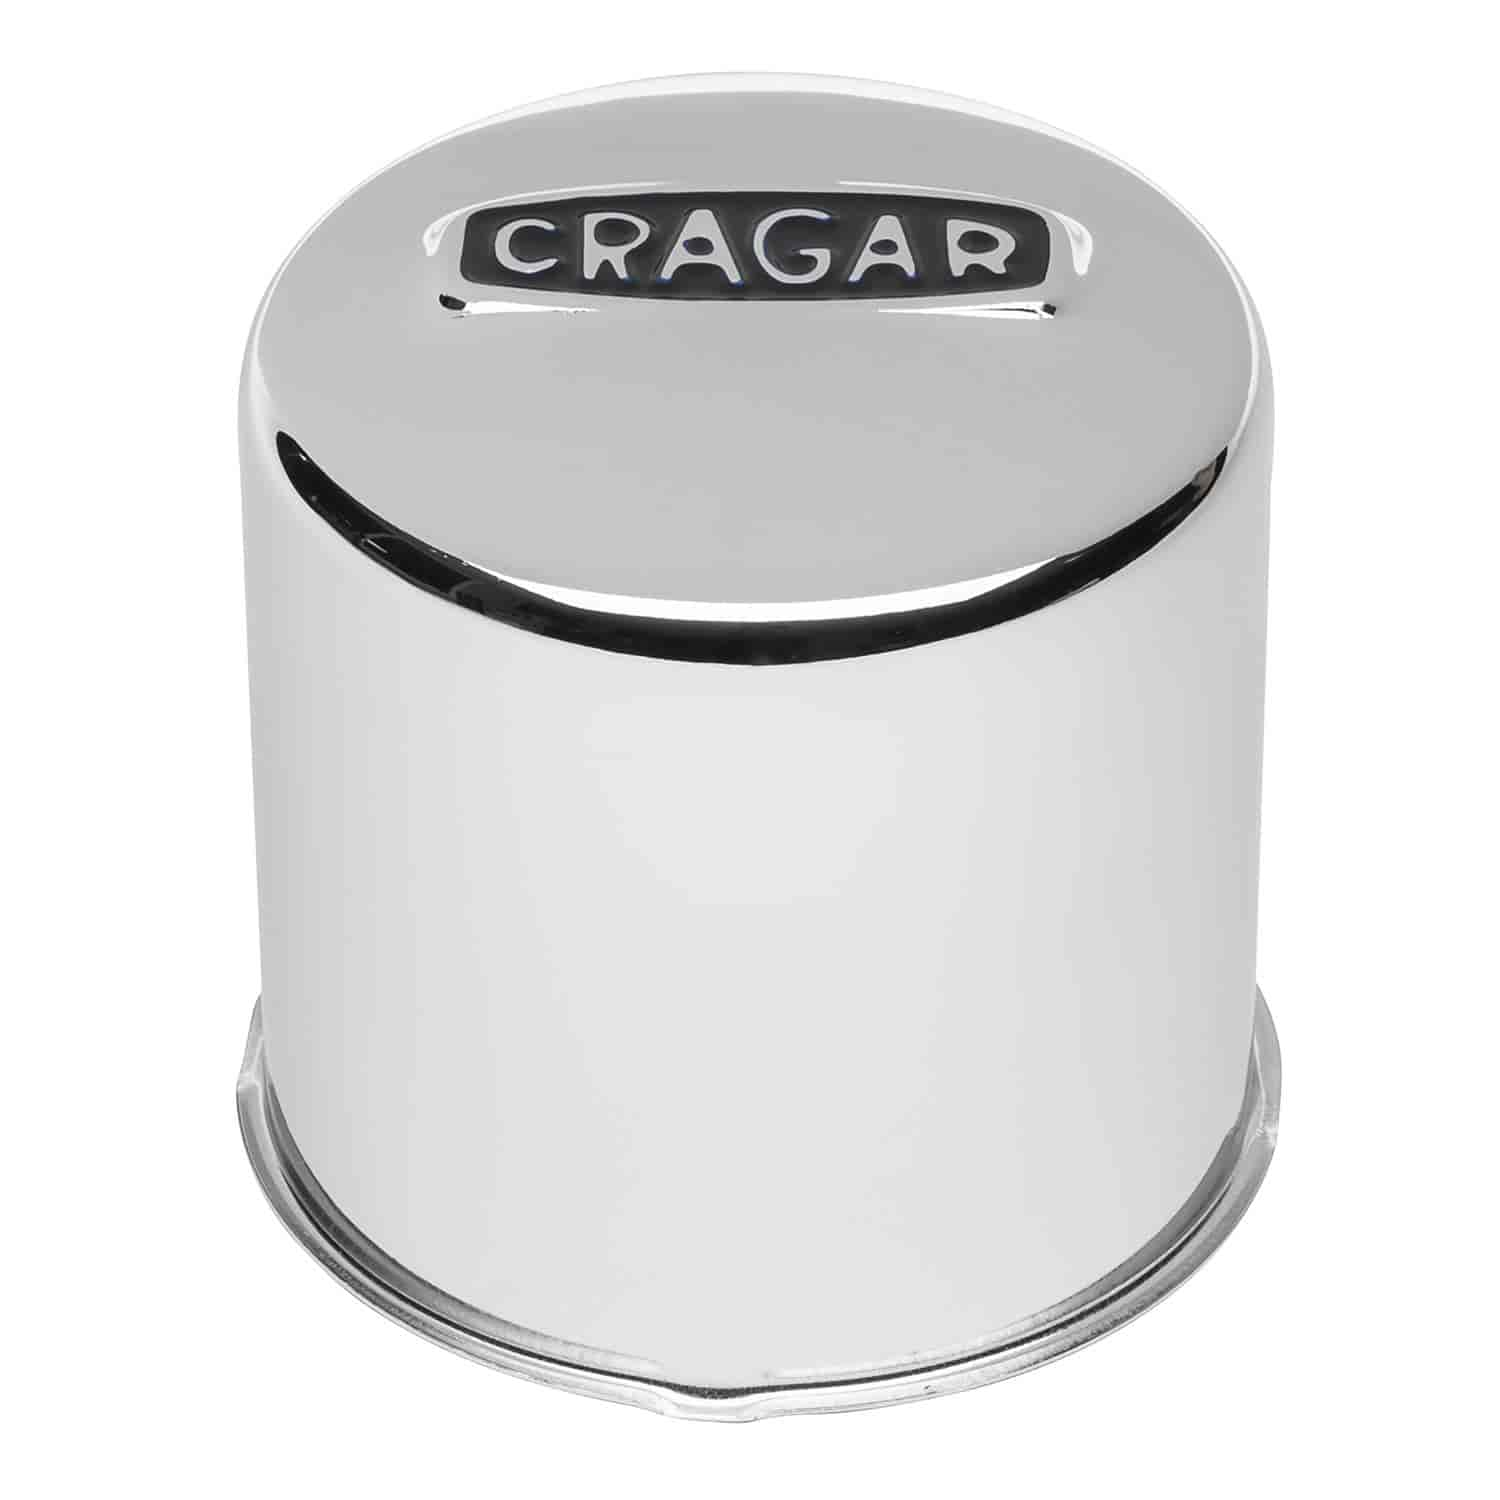 Cragar 29271-1 - Cragar Wheel Center Caps